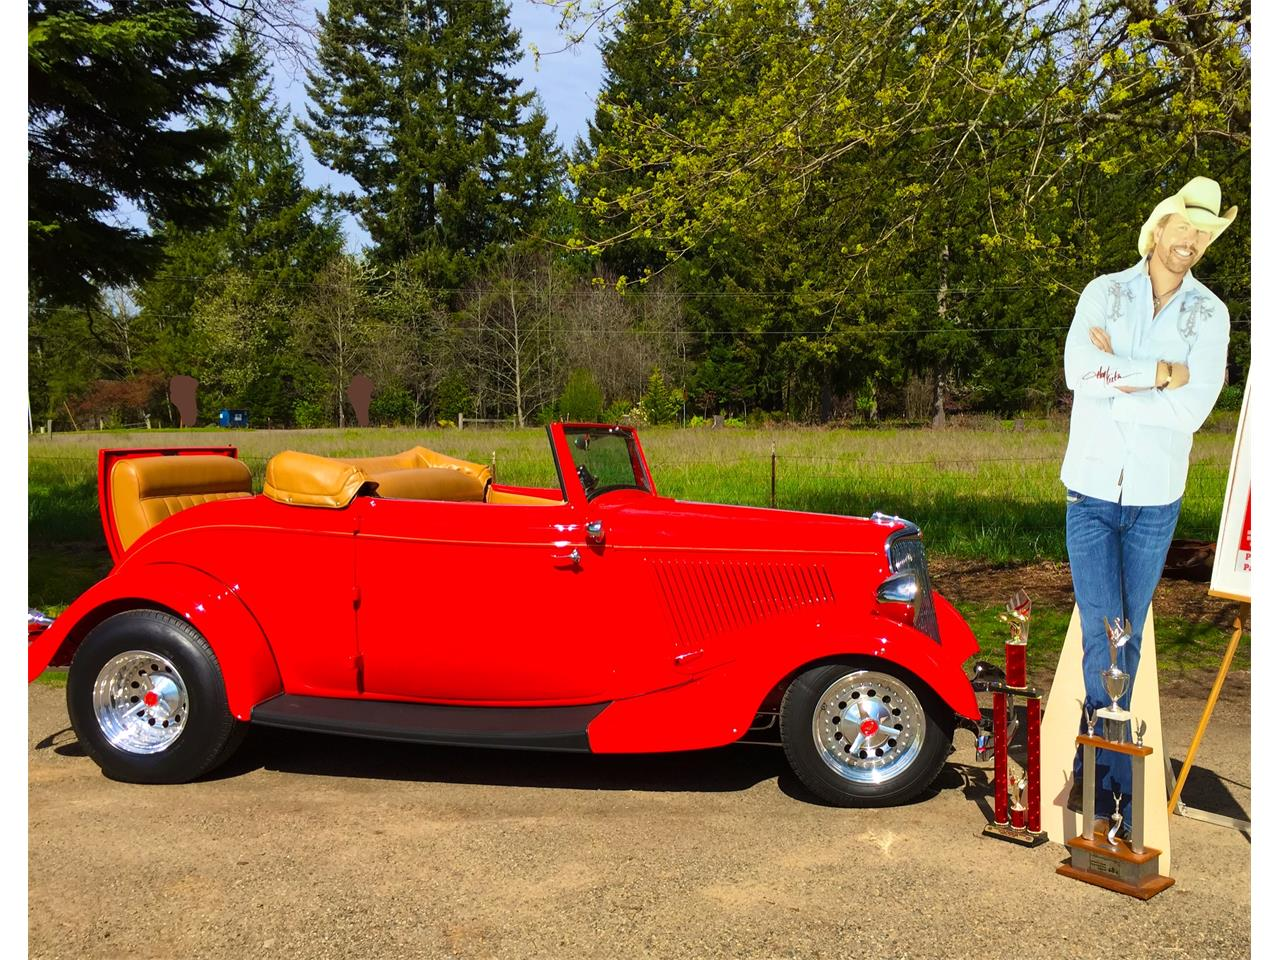 Large Picture of Classic '34 Ford Cabriolet - $60,000.00 Offered by a Private Seller - MRLT